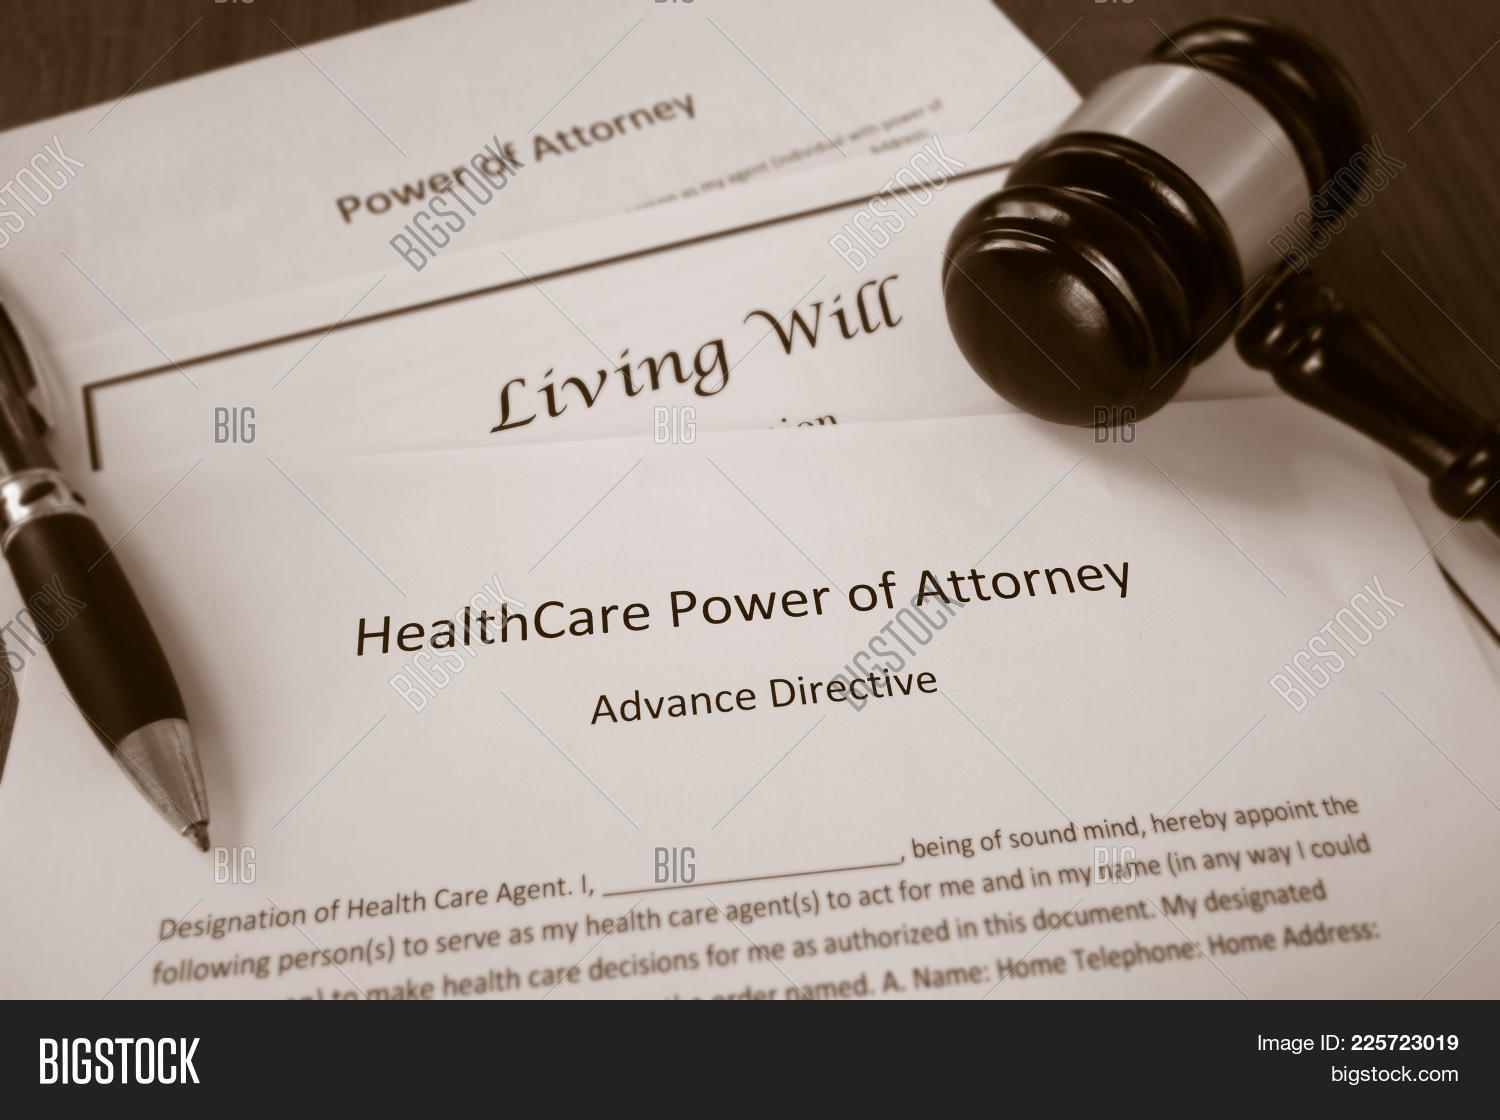 Healthcare Power Image Photo Free Trial Bigstock - Legal will documents for free